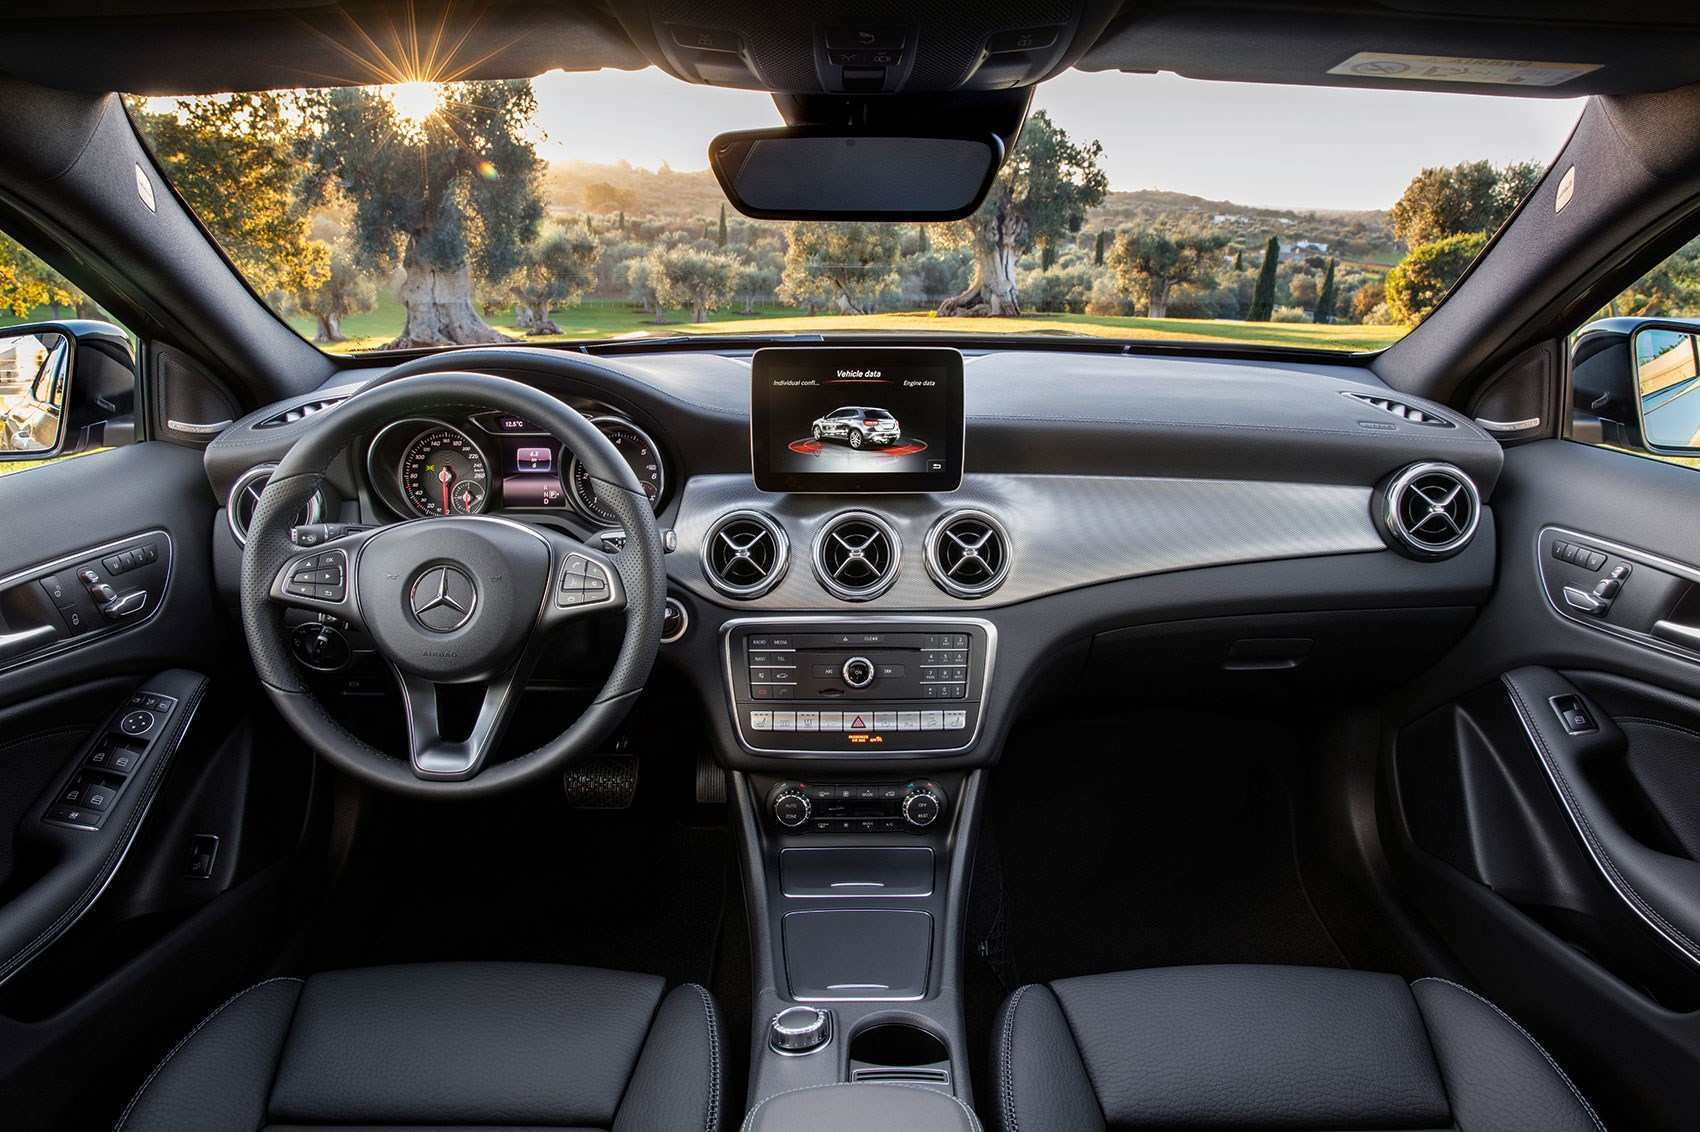 47 Gallery of Mercedes Gla 2019 Interior Picture for Mercedes Gla 2019 Interior